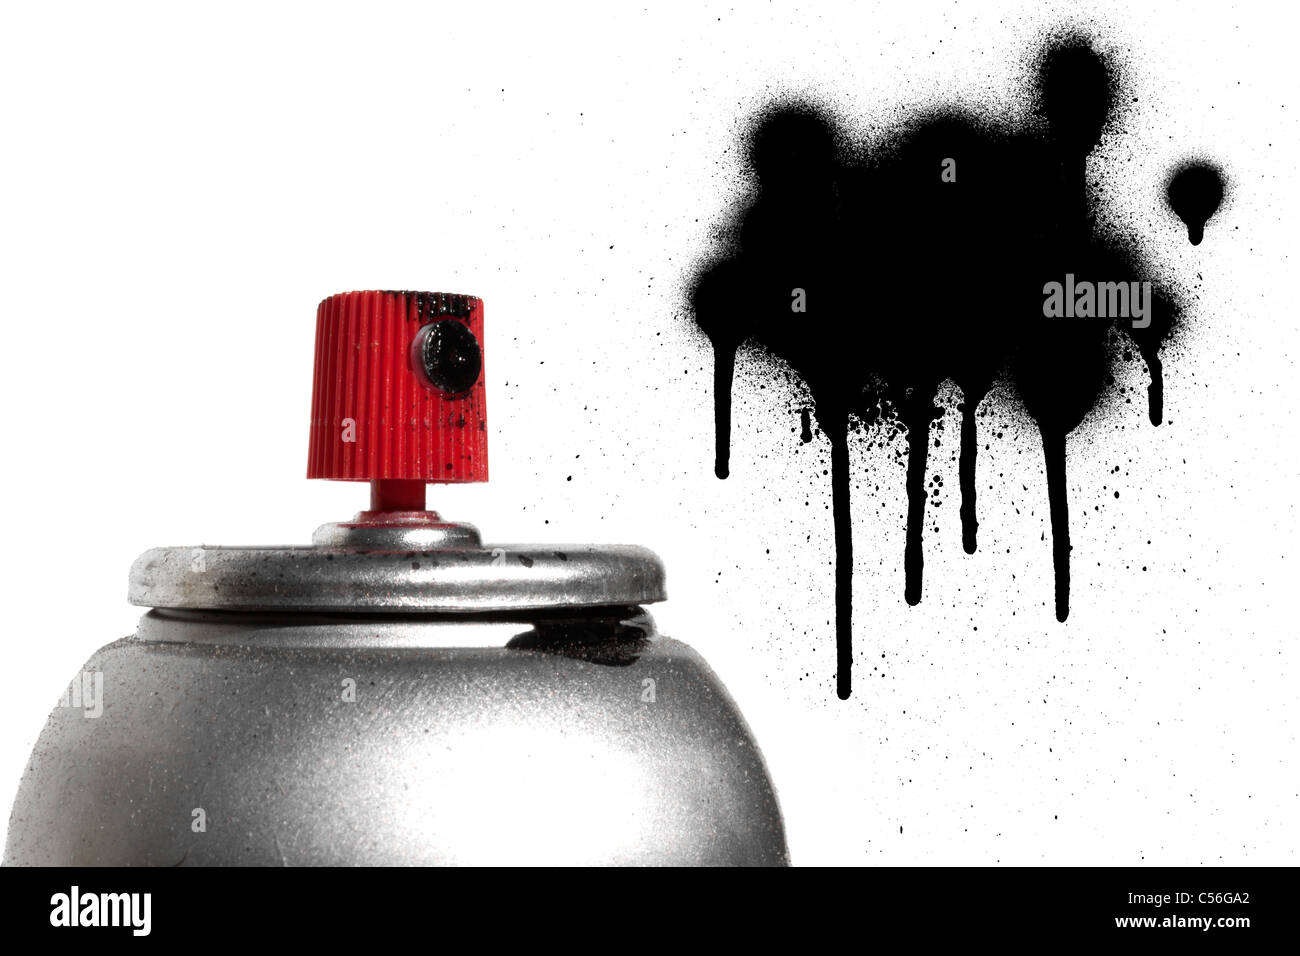 Graffiti spray paint can - Stock Image